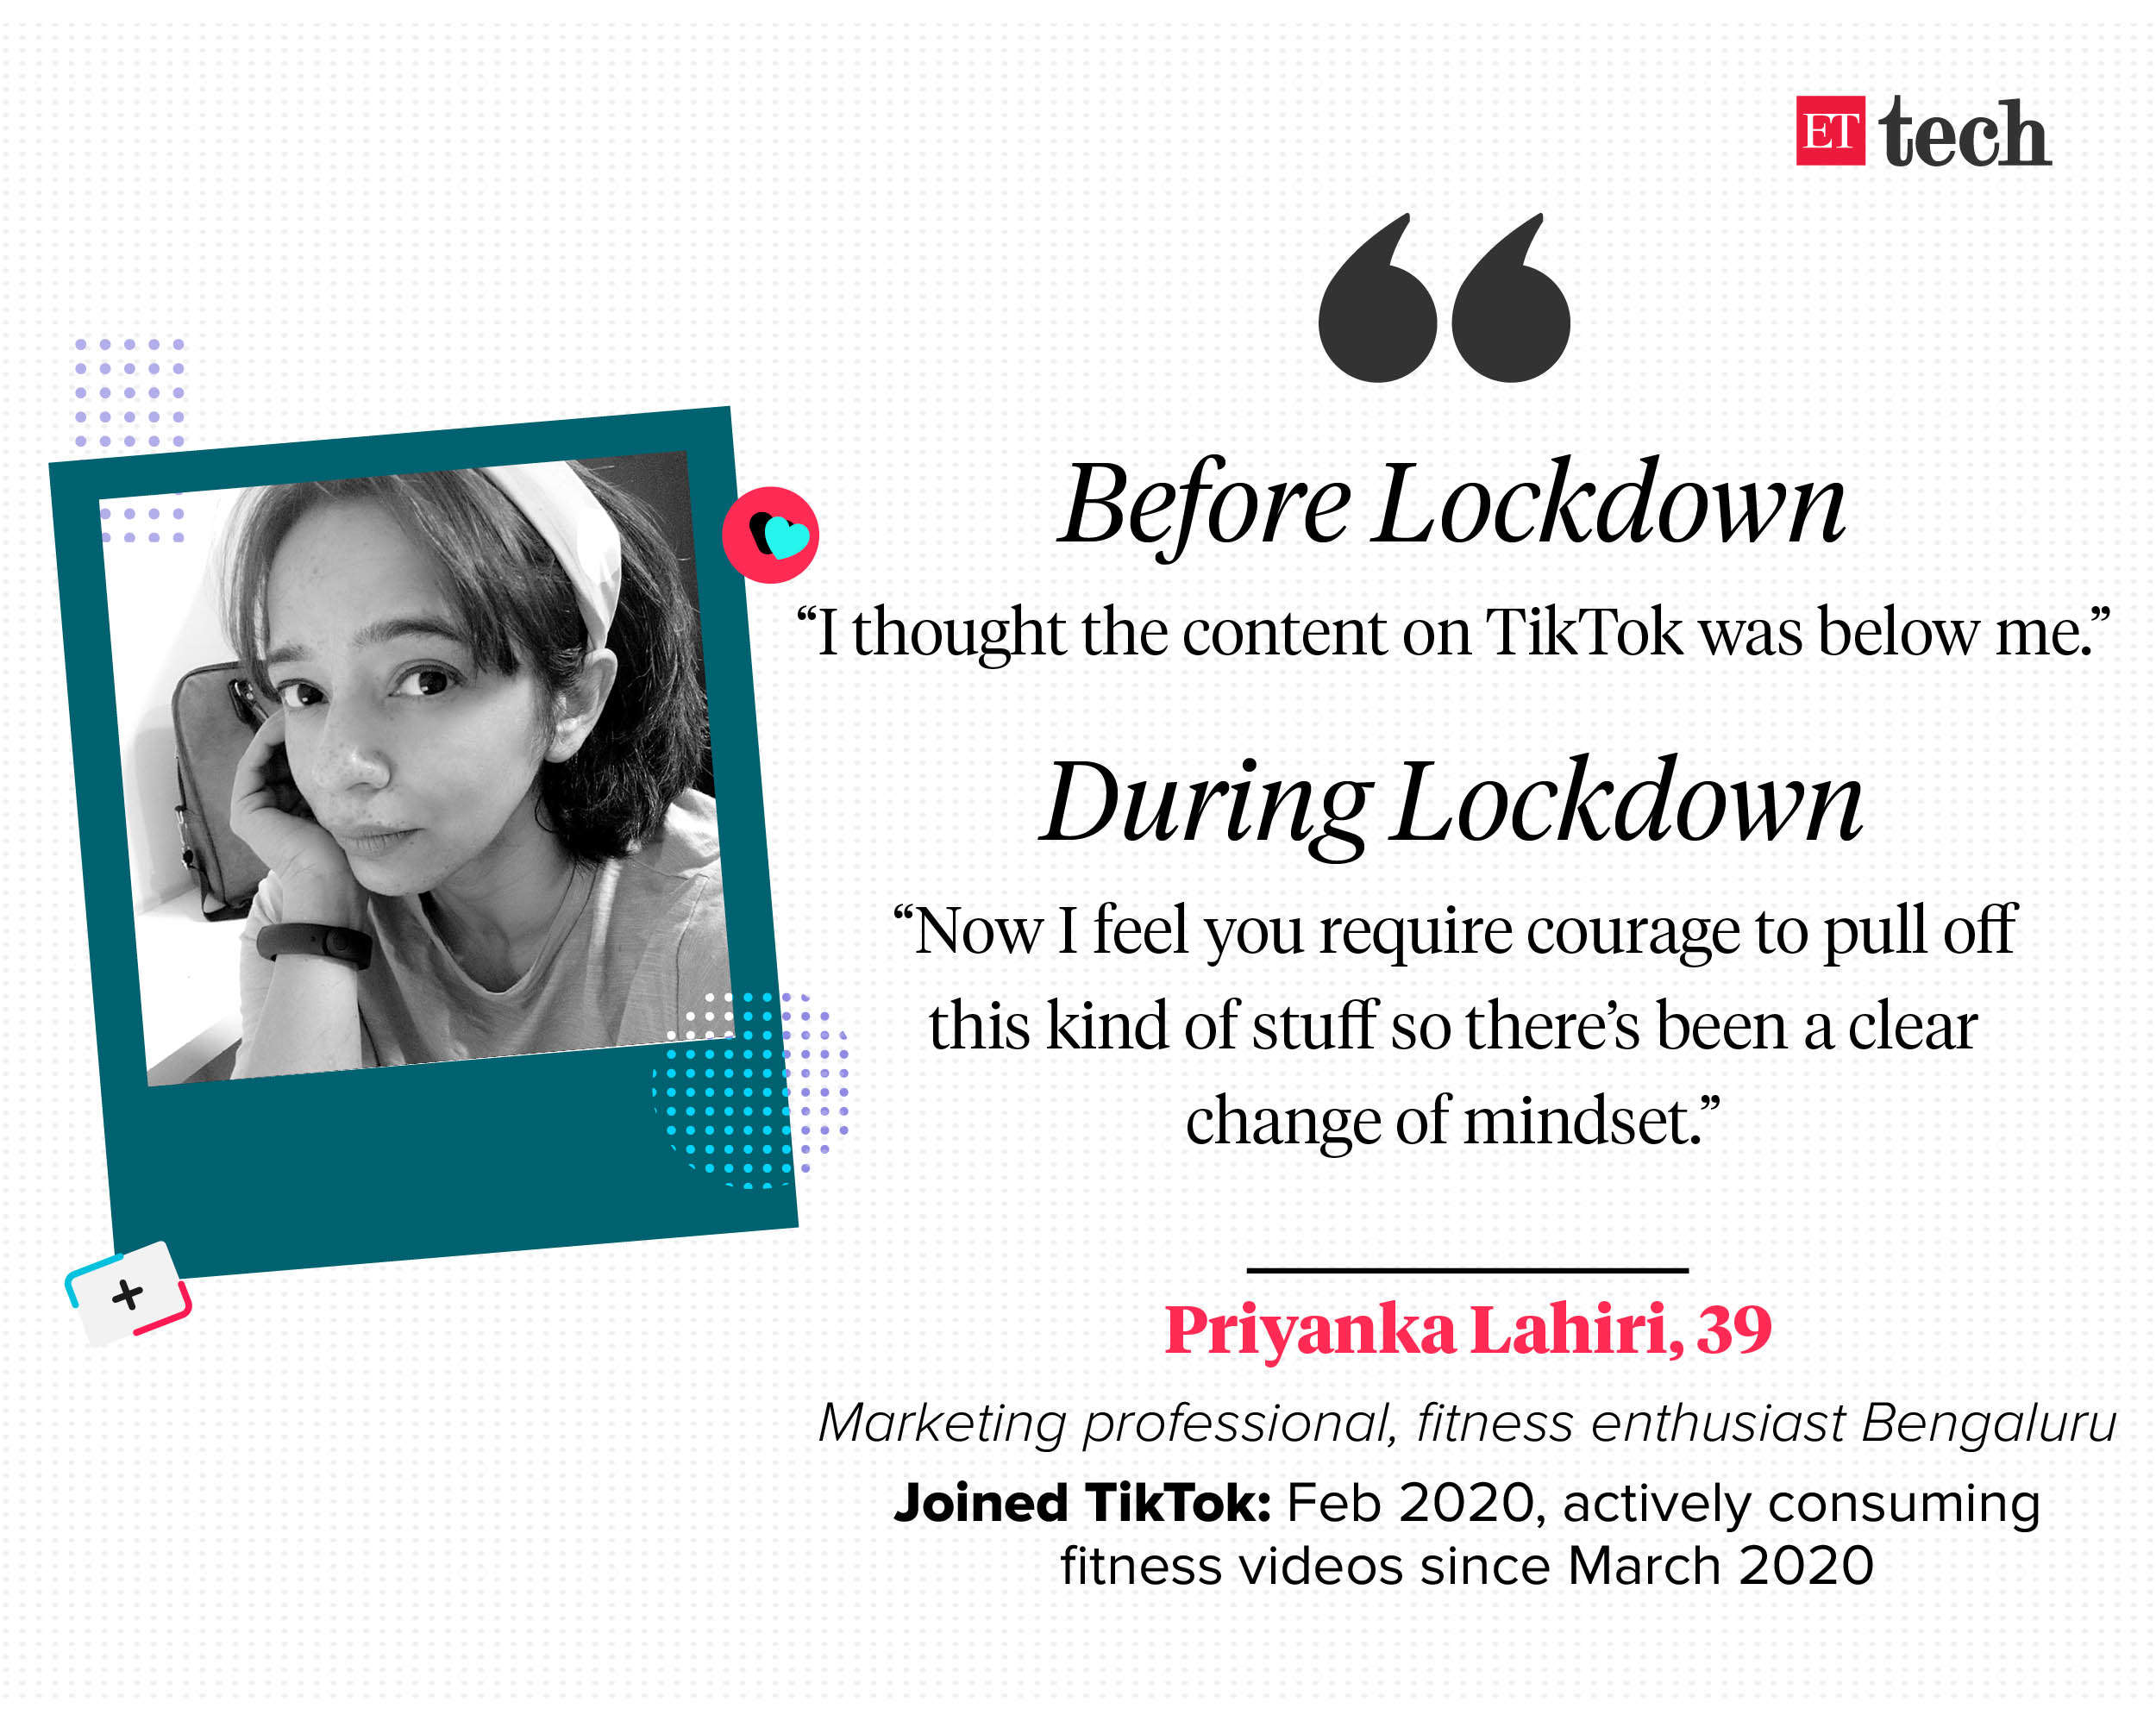 A friend coaxed Agarwal into joining the platform shortly after lockdown, she tells ET.